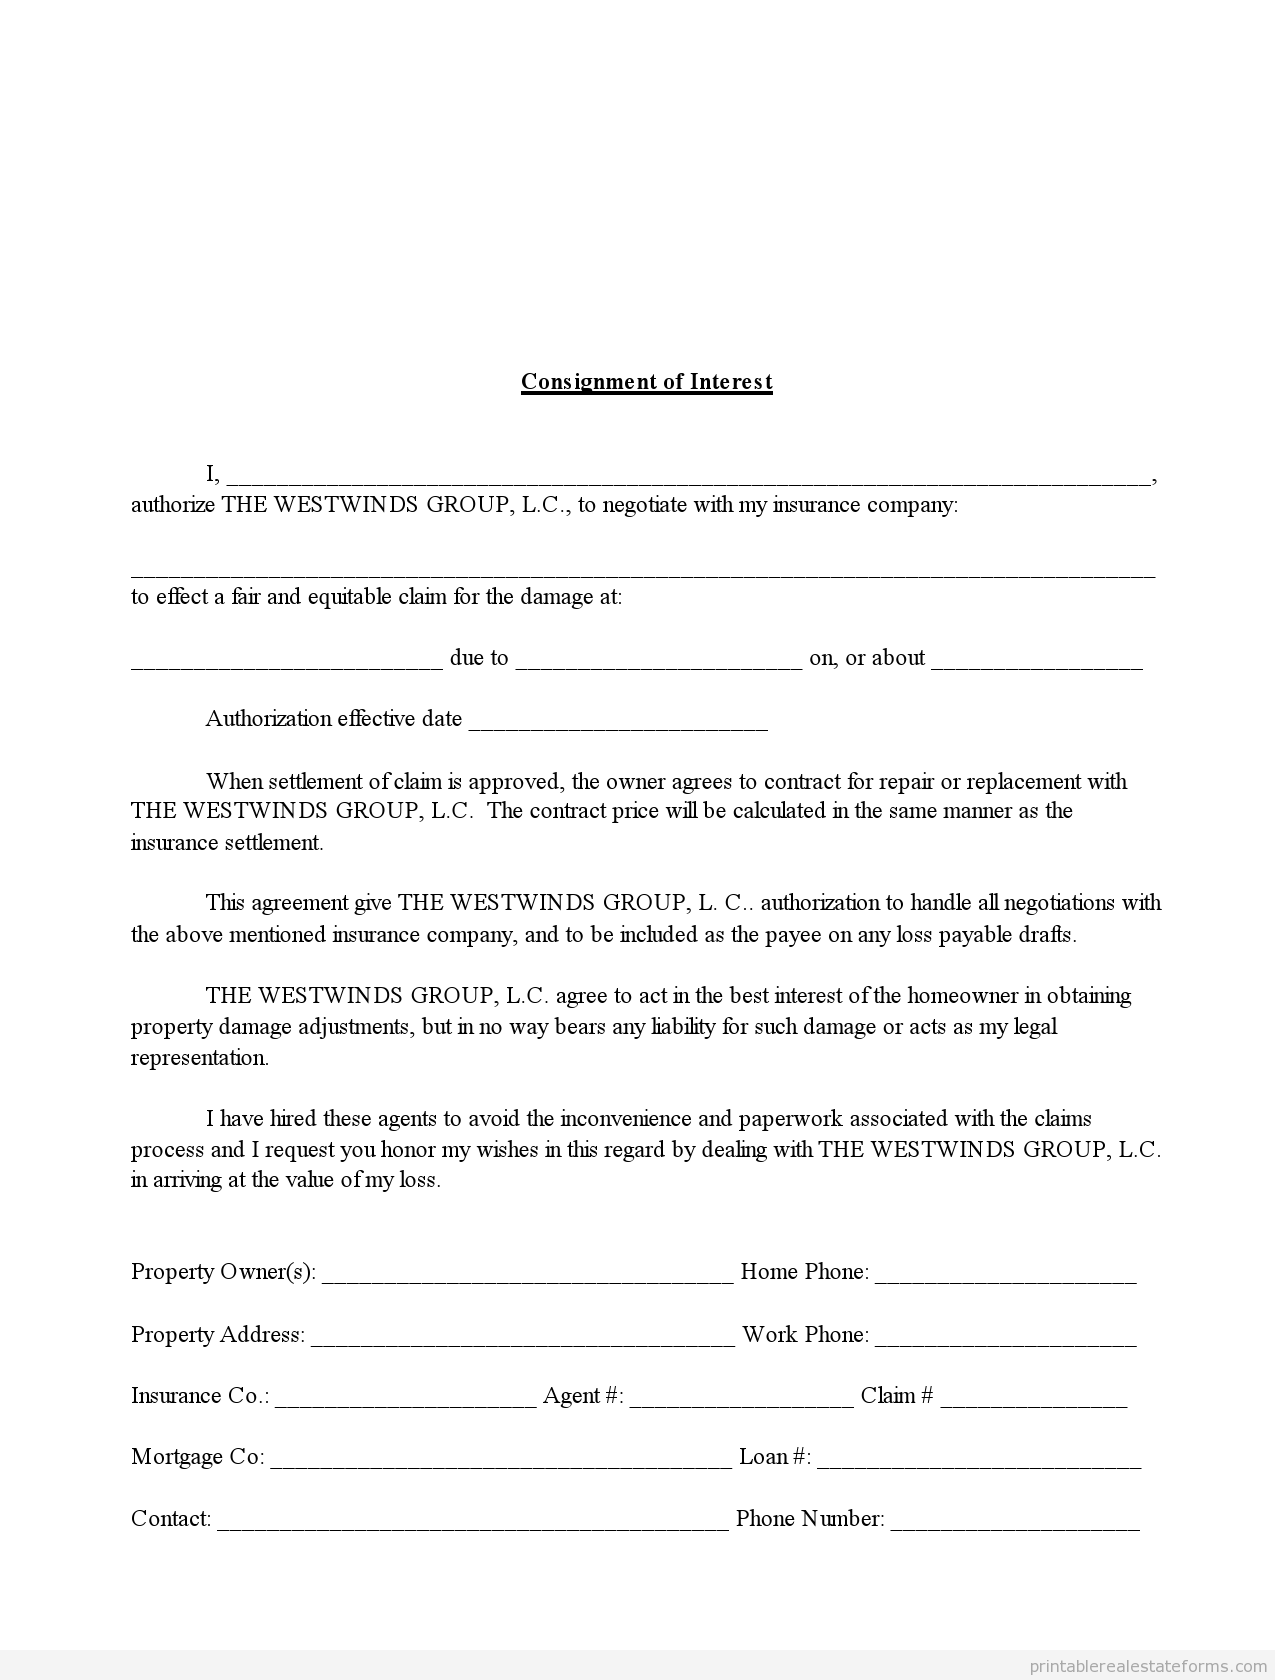 Sample Printable consignment of interest in insurance